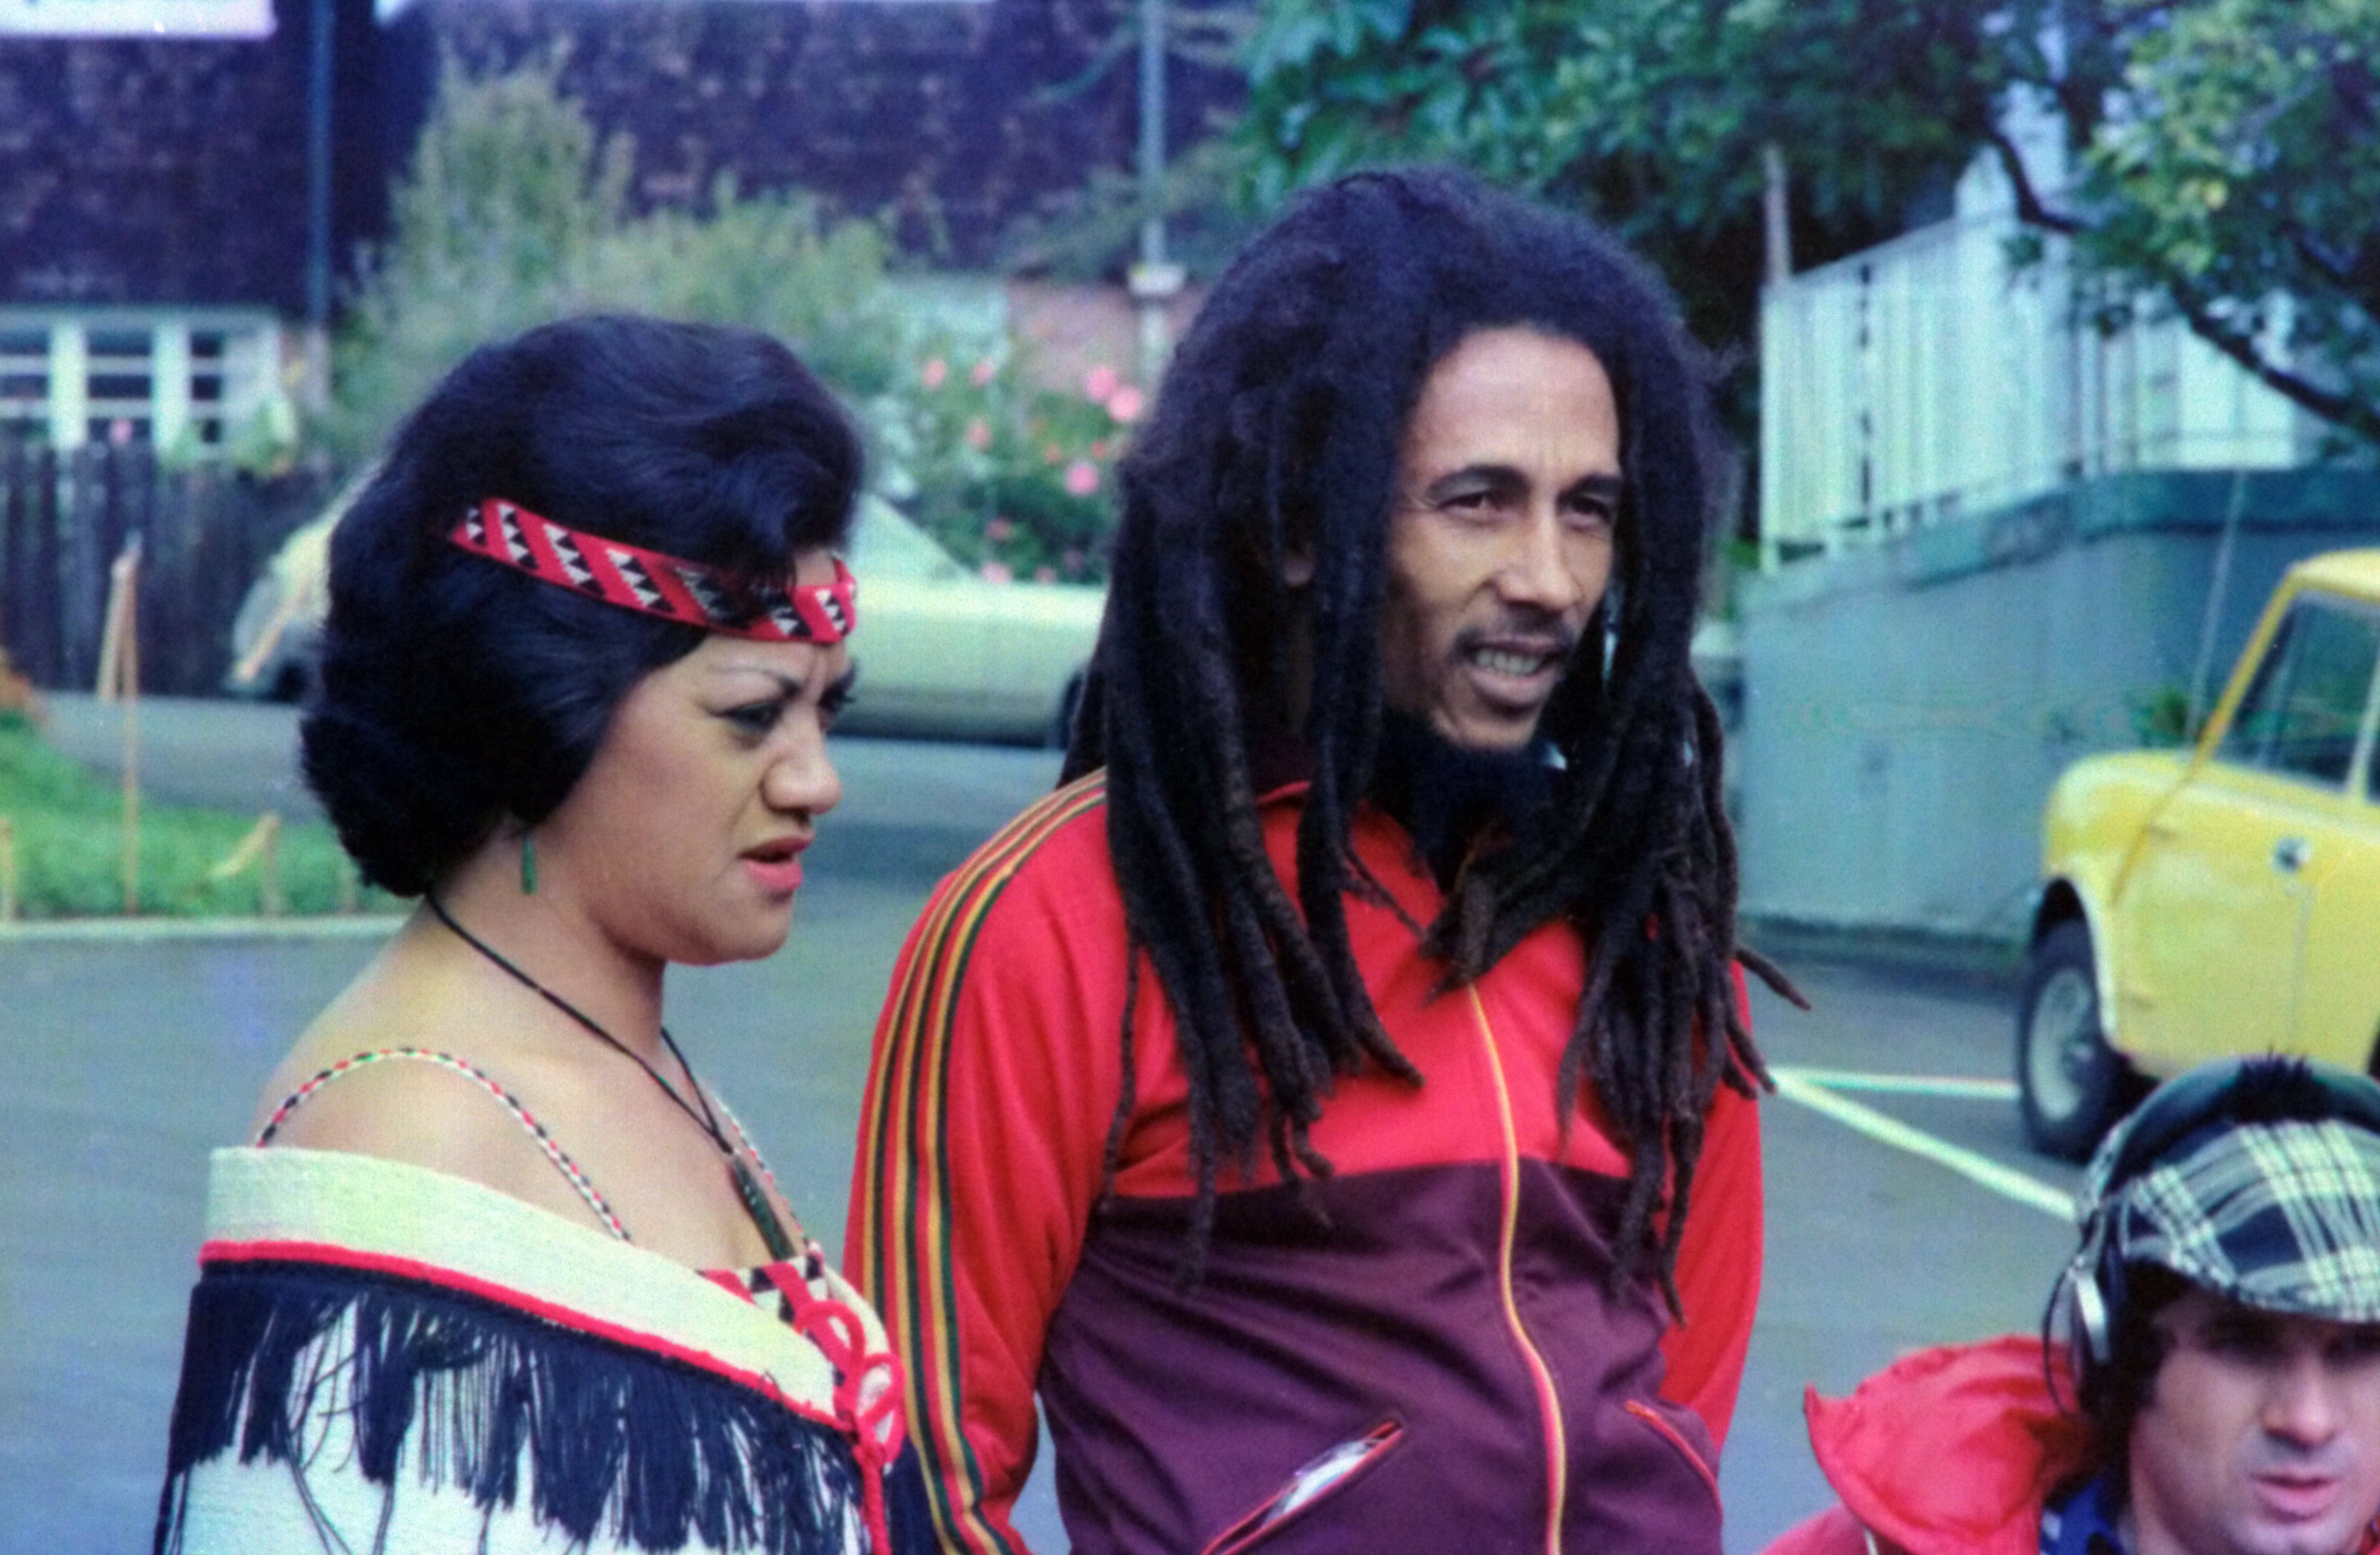 Bob Marley standing beside woman during daytime